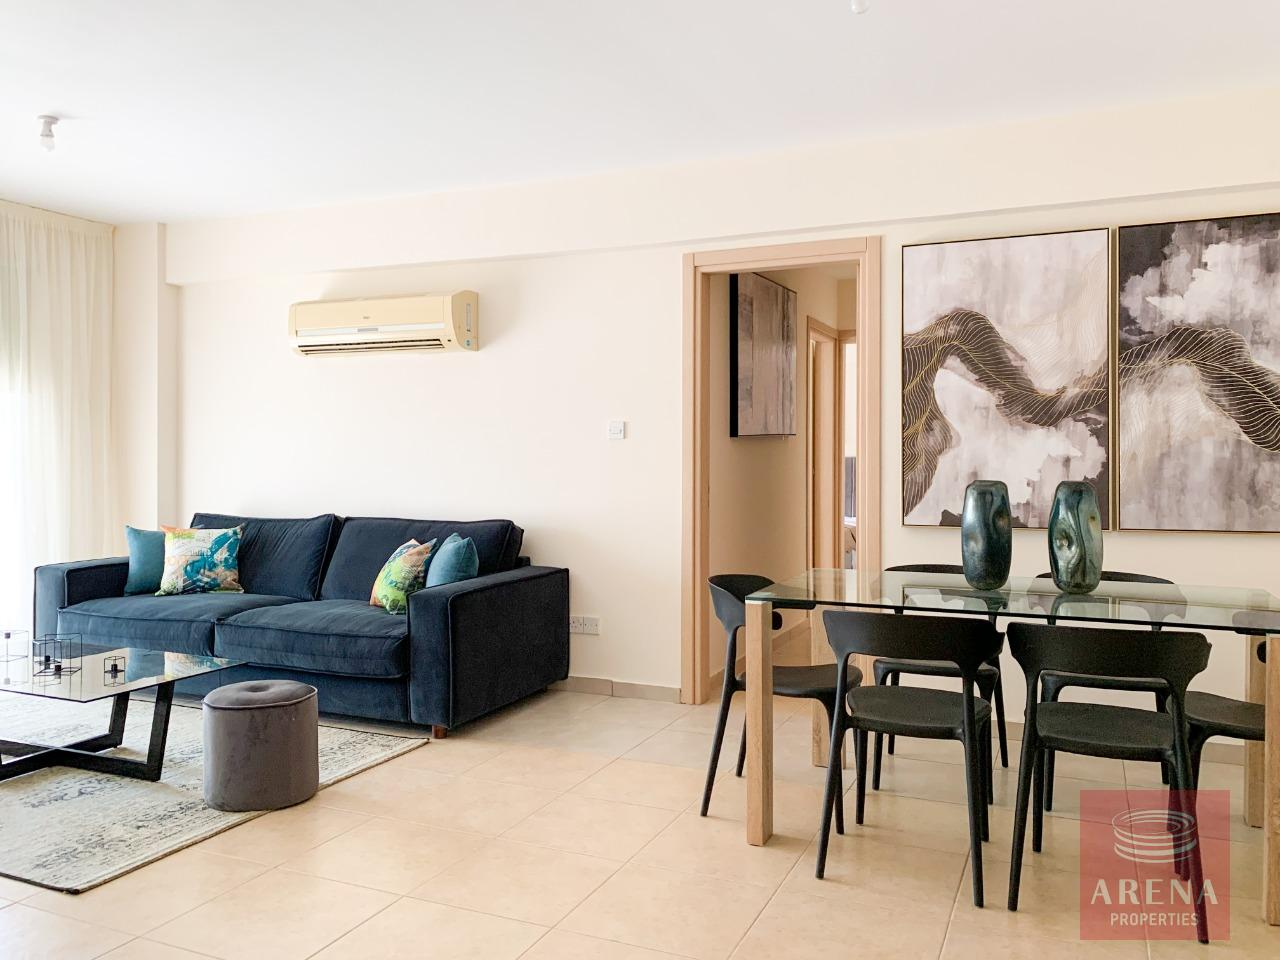 Apt for sale in Larnaca - sitting area